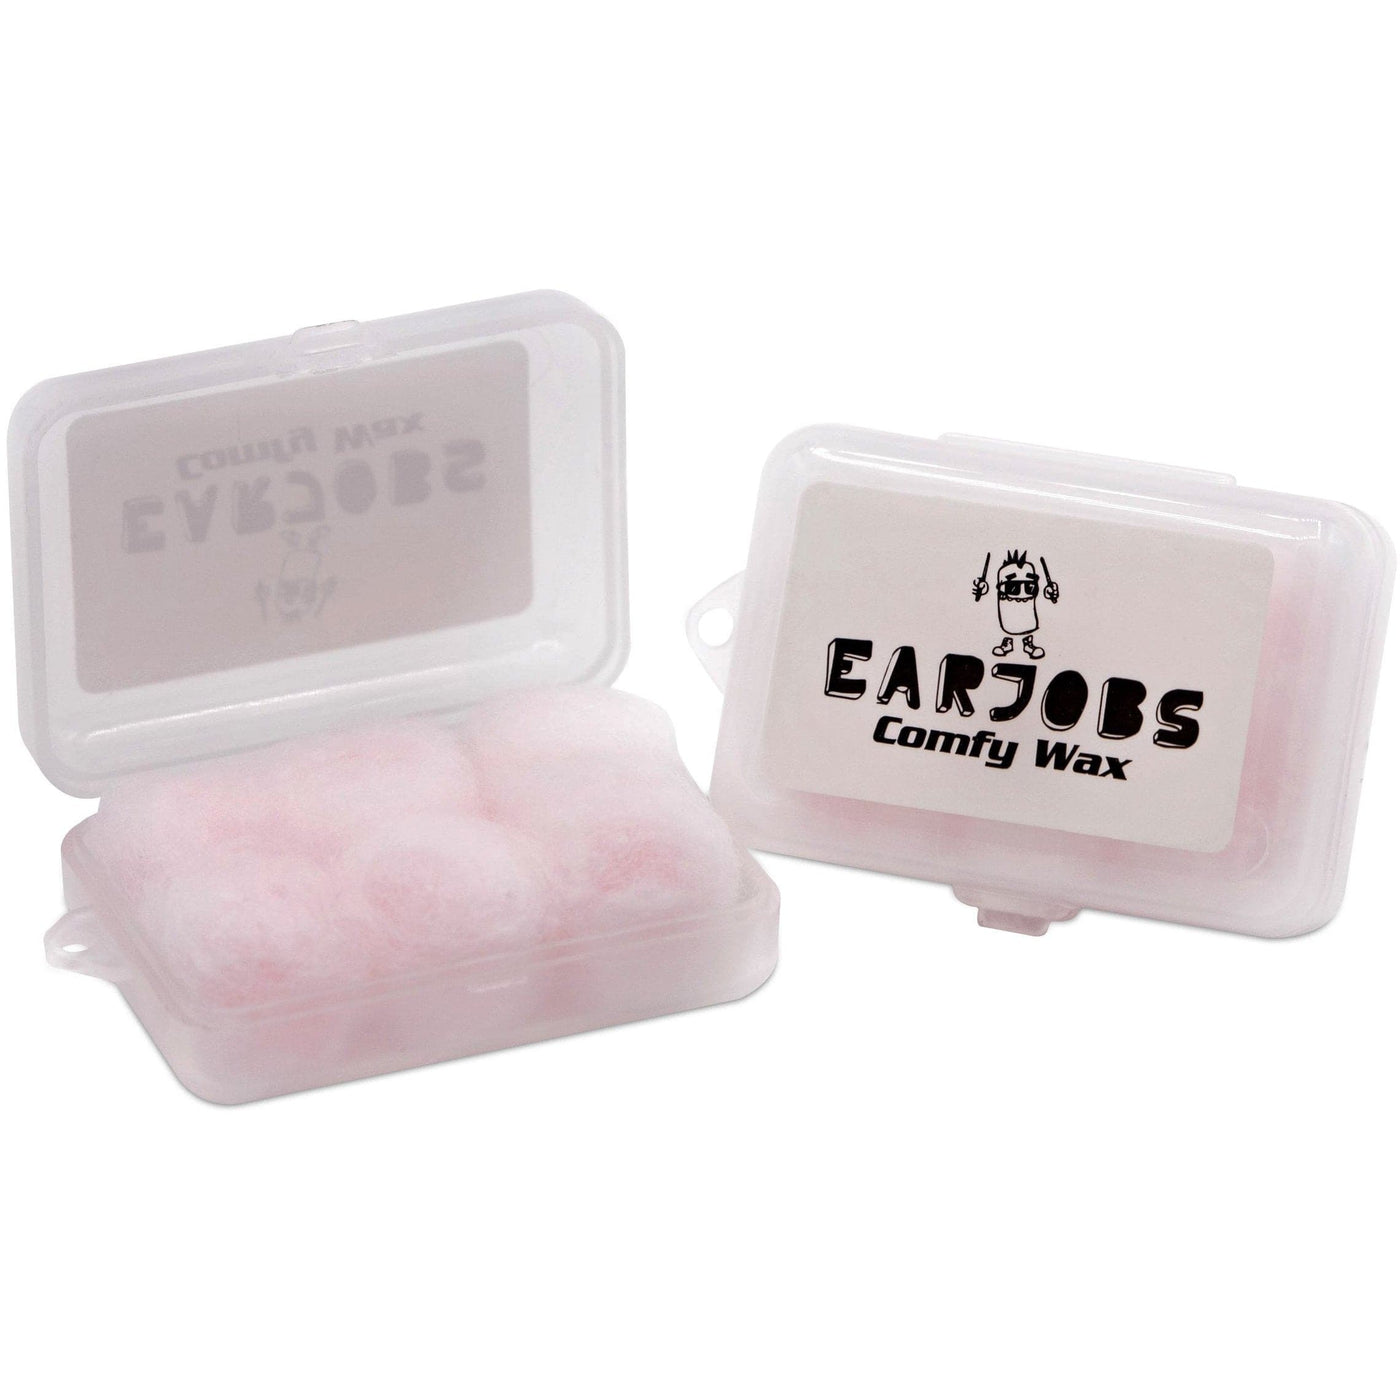 Earjobs™ Comfy Wax Ear Plugs (SNR 23)